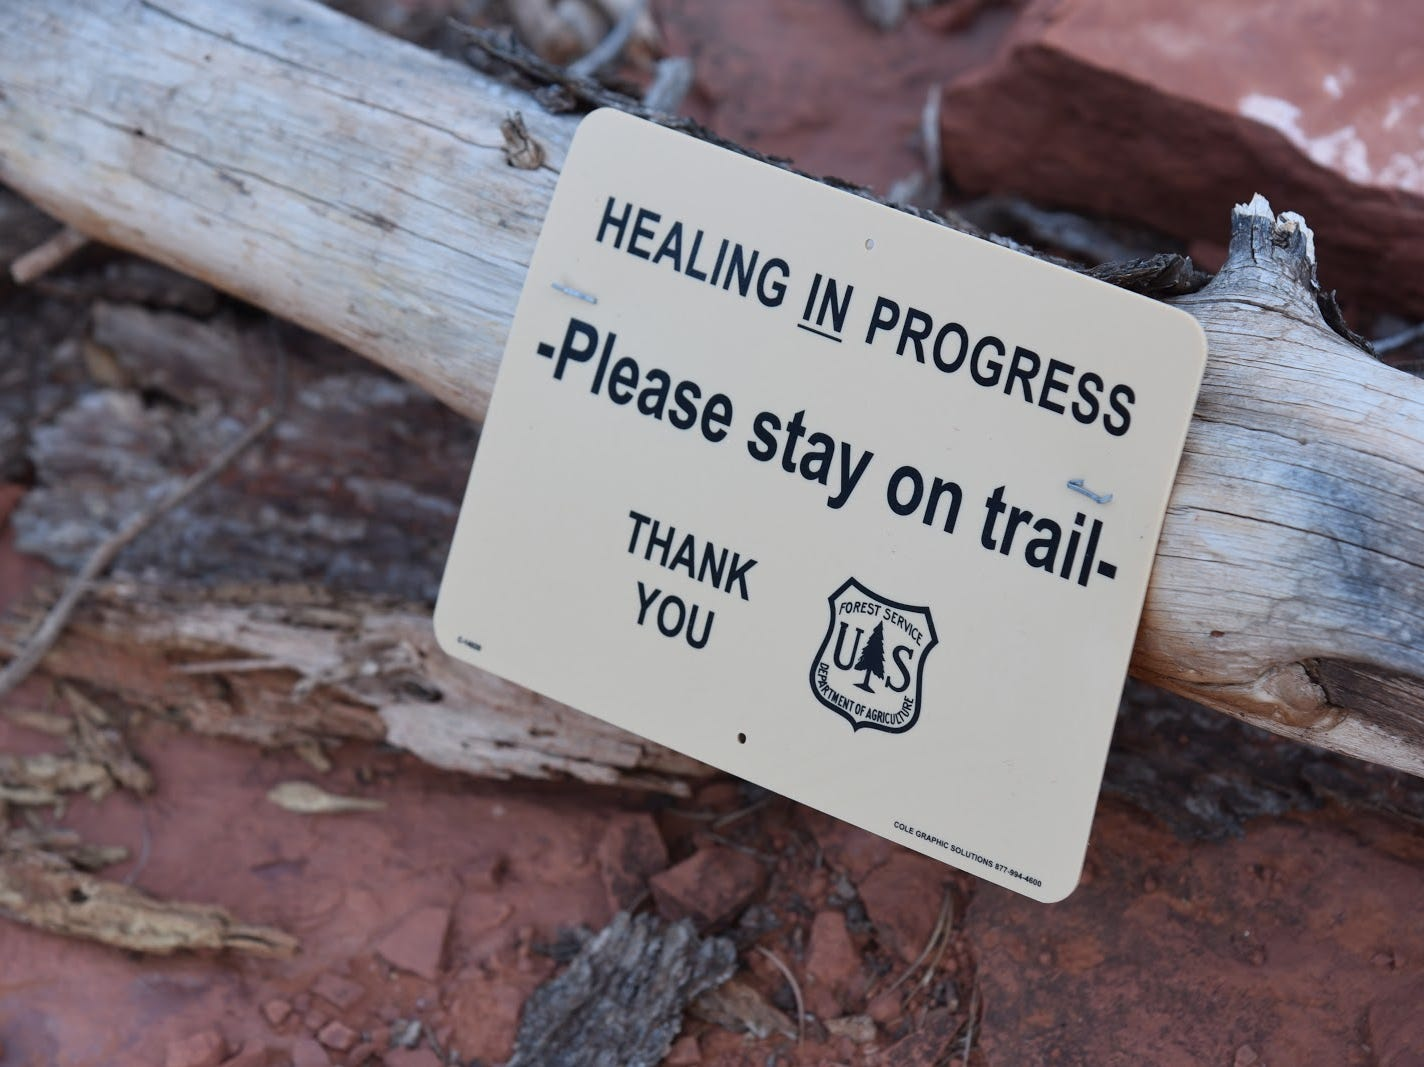 Stay on designated trails to protect the wilderness.